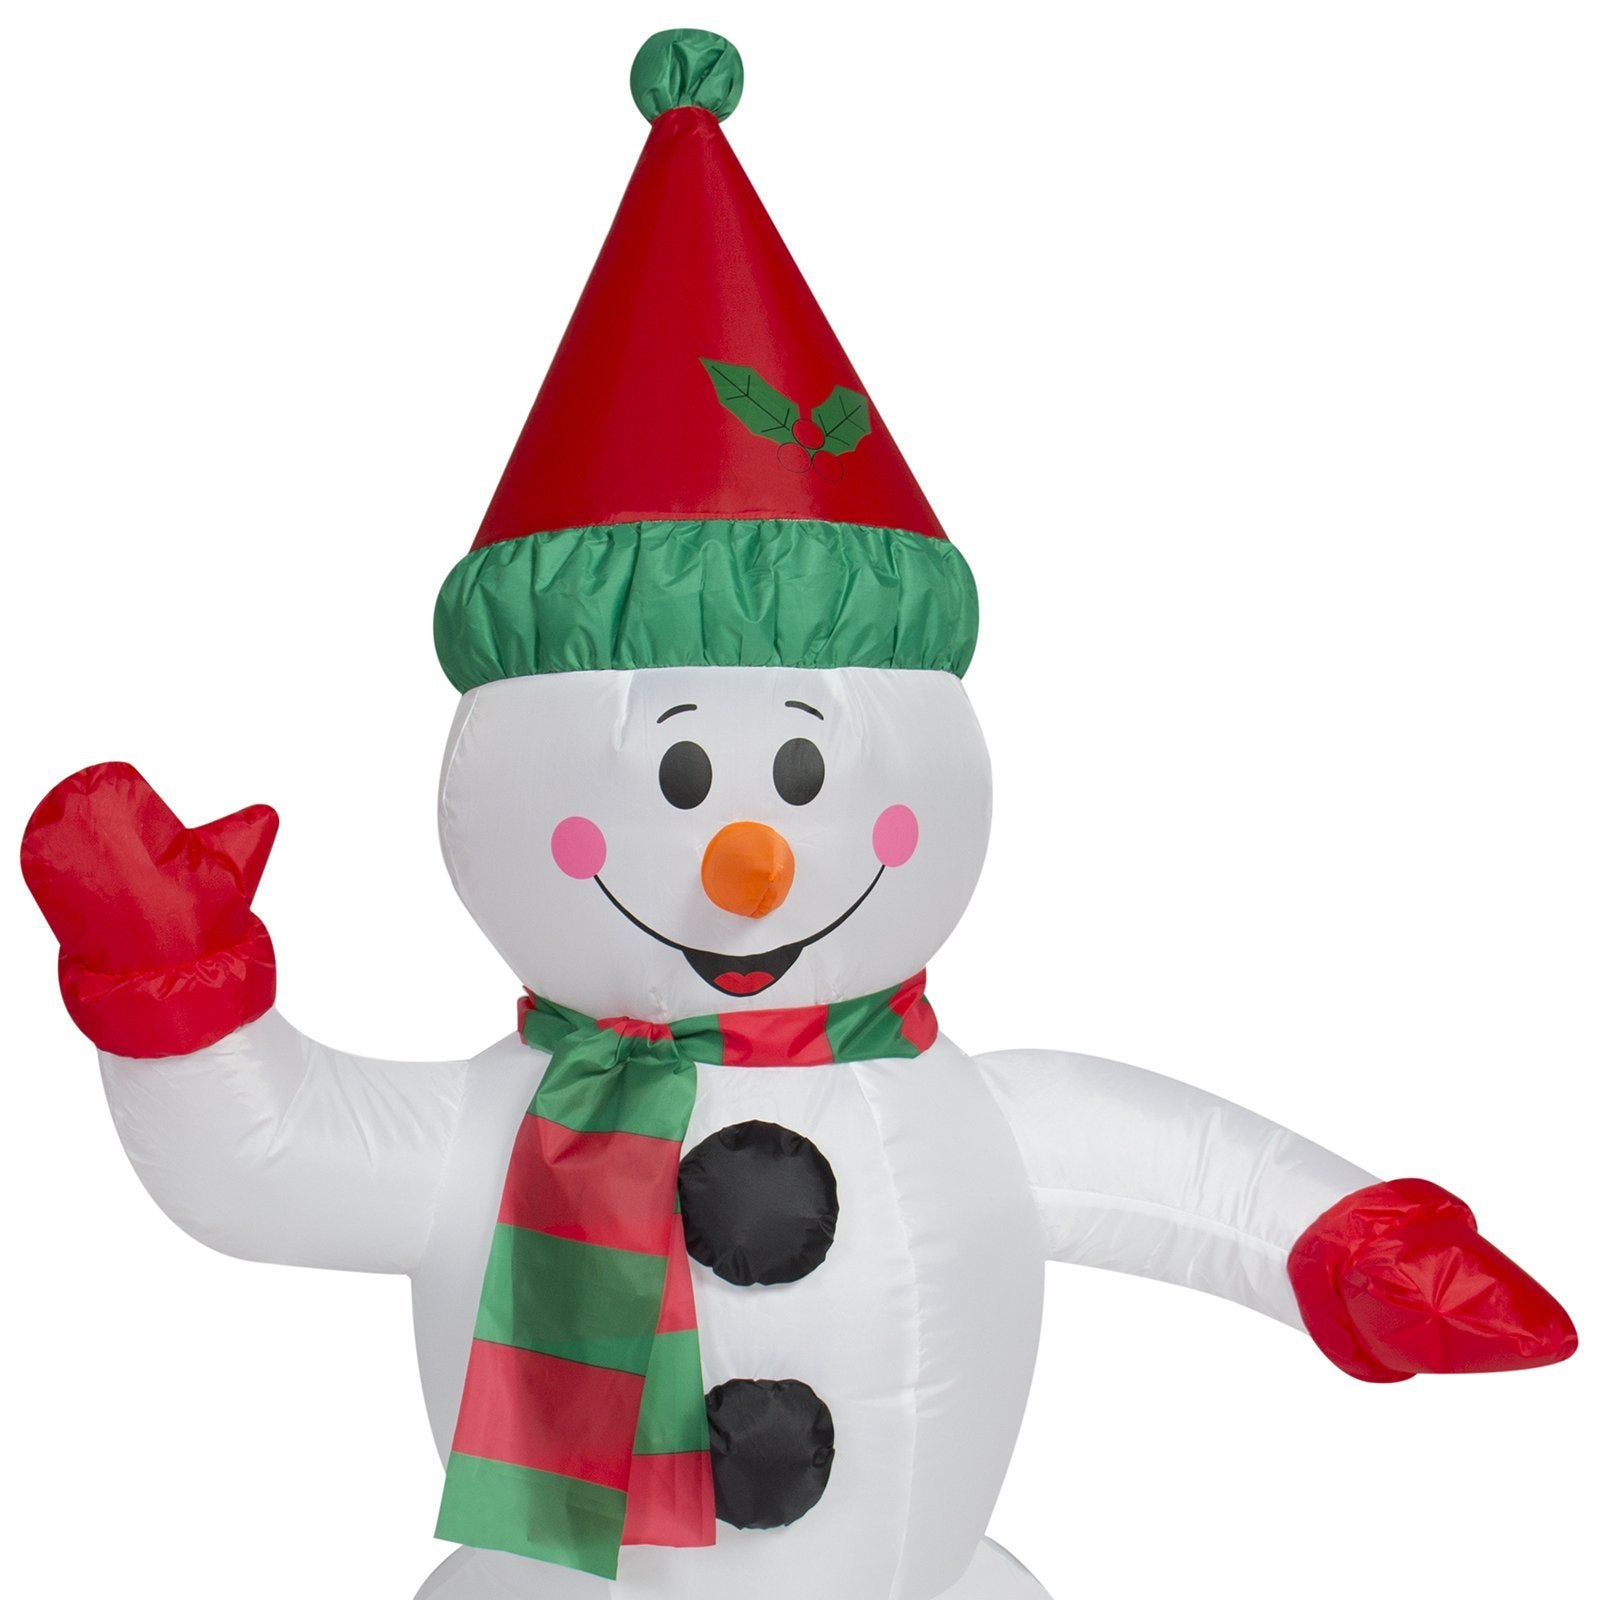 4ft Pre-Lit Inflatable Snowman Christmas Decor w/ Blower, Lights - White